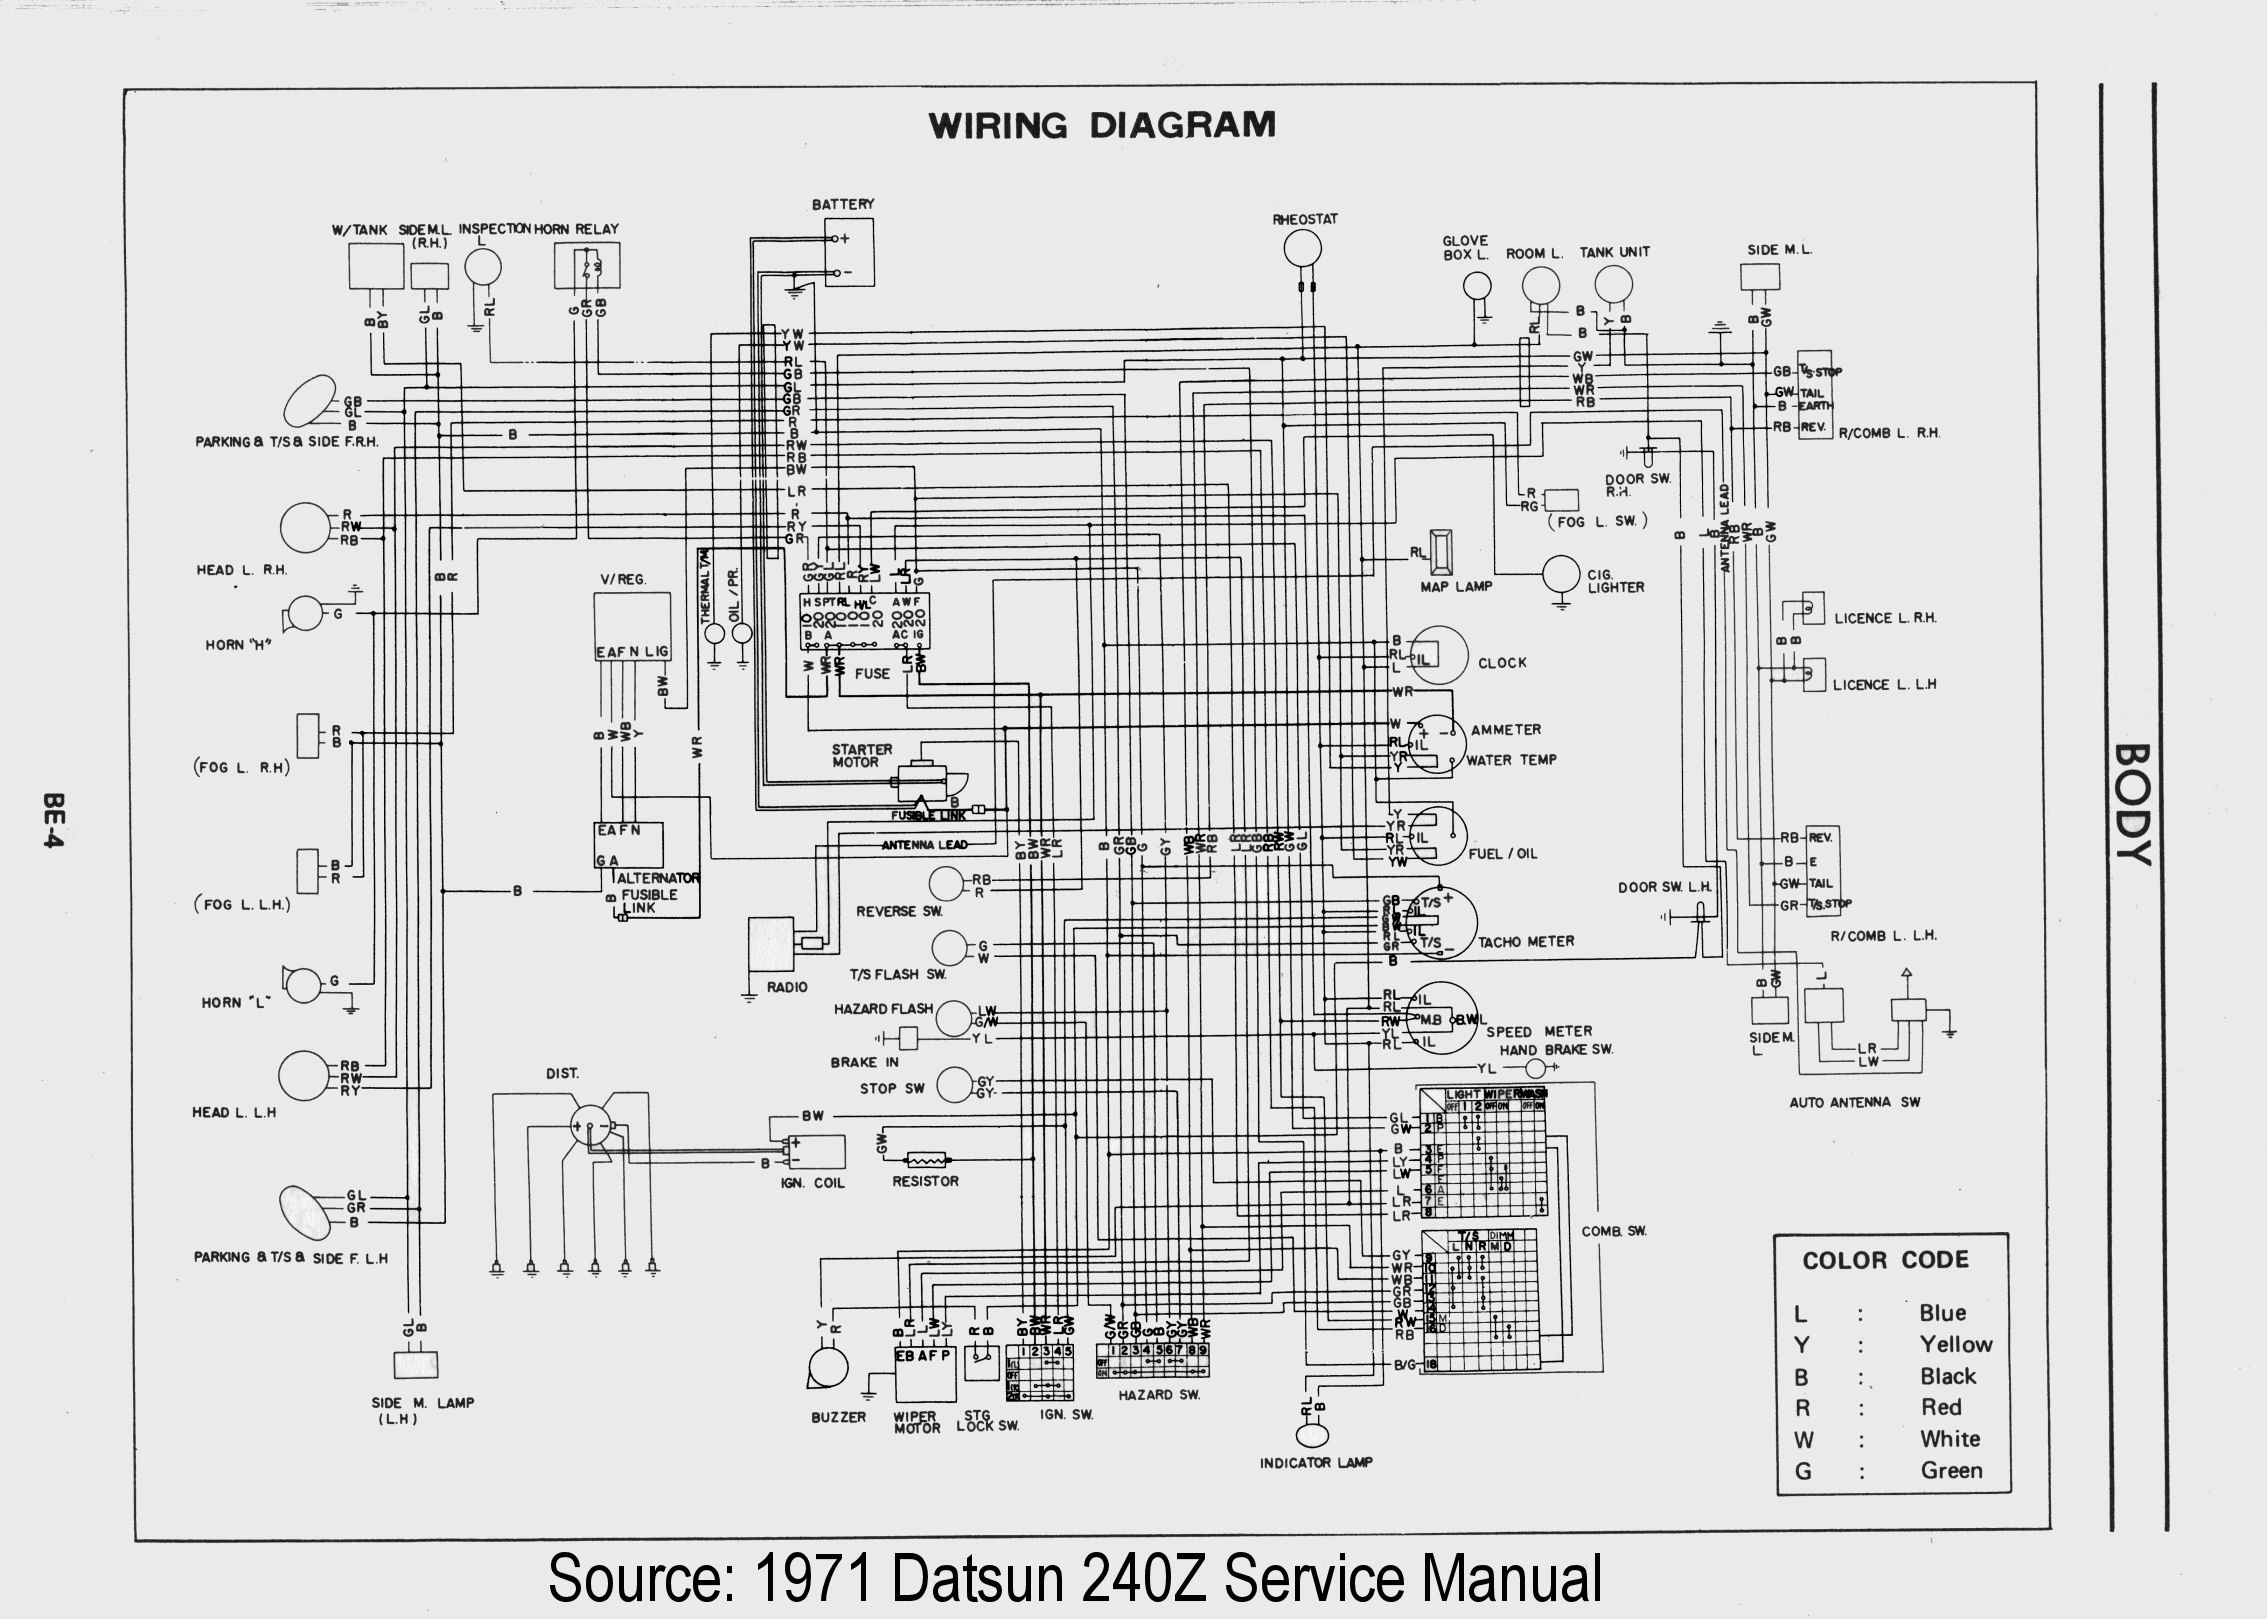 Wiring Diagram HiRes 2 generic wiring troubleshooting checklist woodworkerb Custom Automotive Wiring Harness Kits at soozxer.org